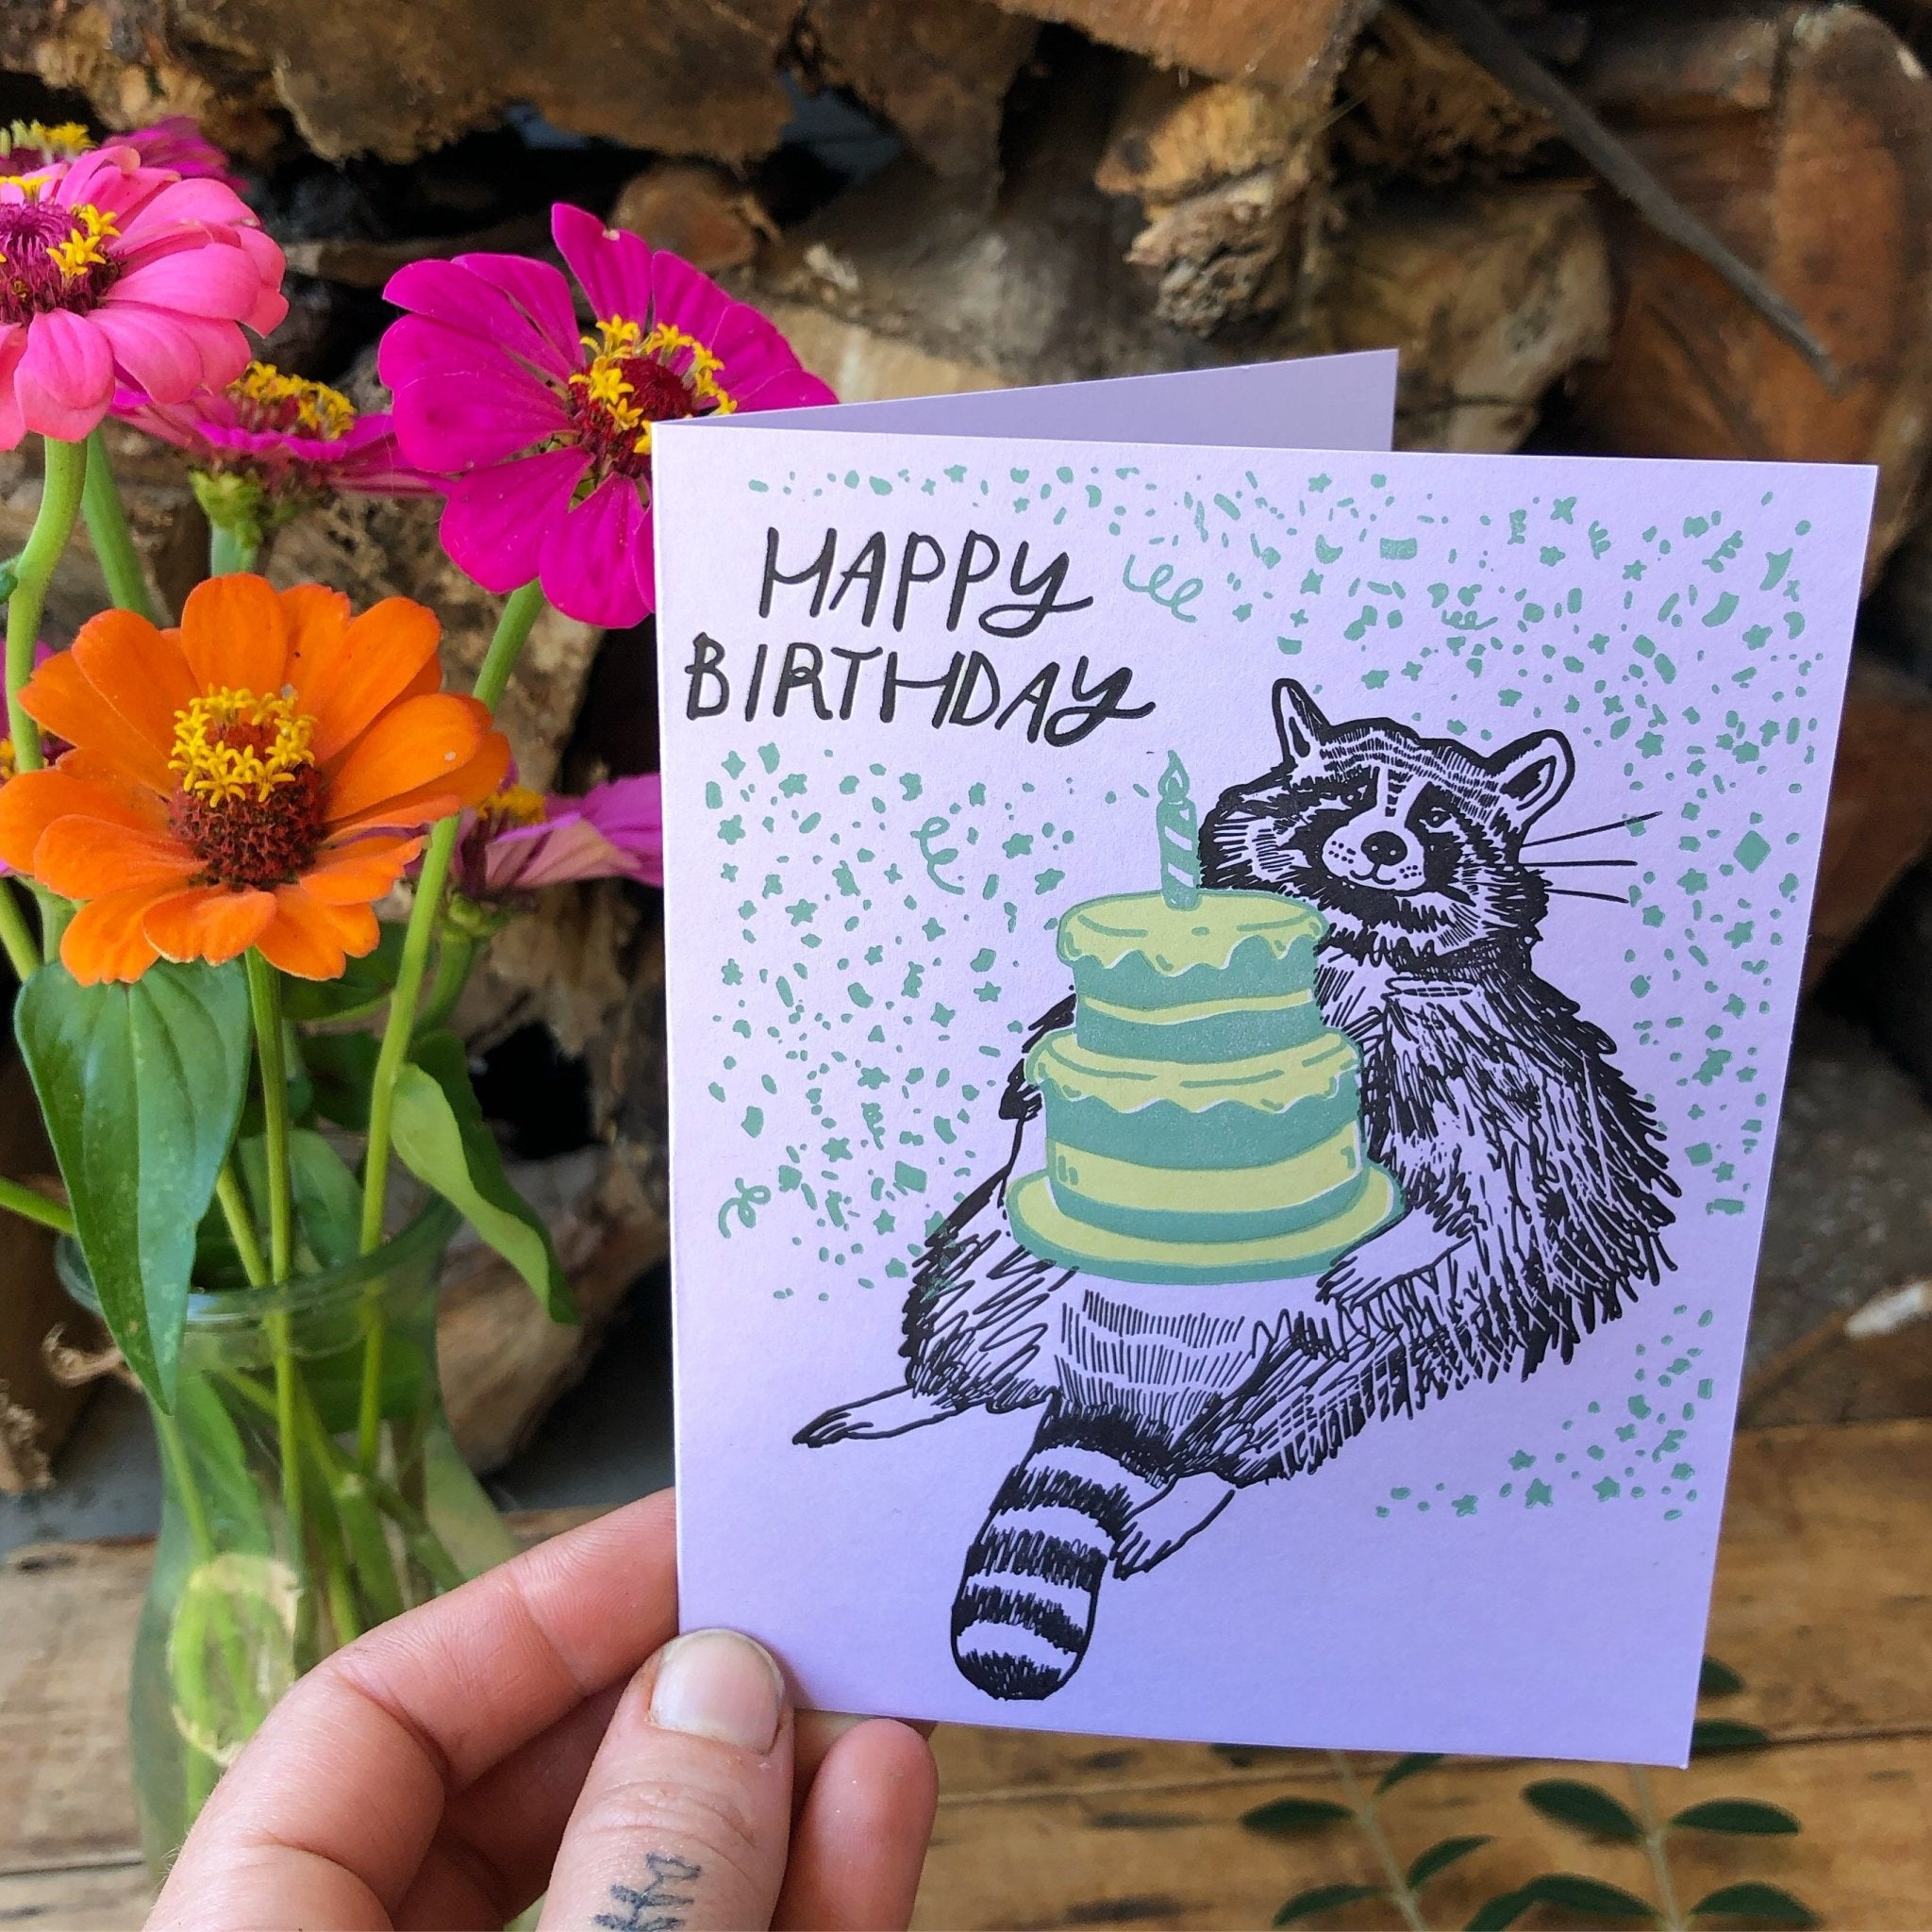 Birthday Raccoon Card - Ratbee Press -Freehand Market